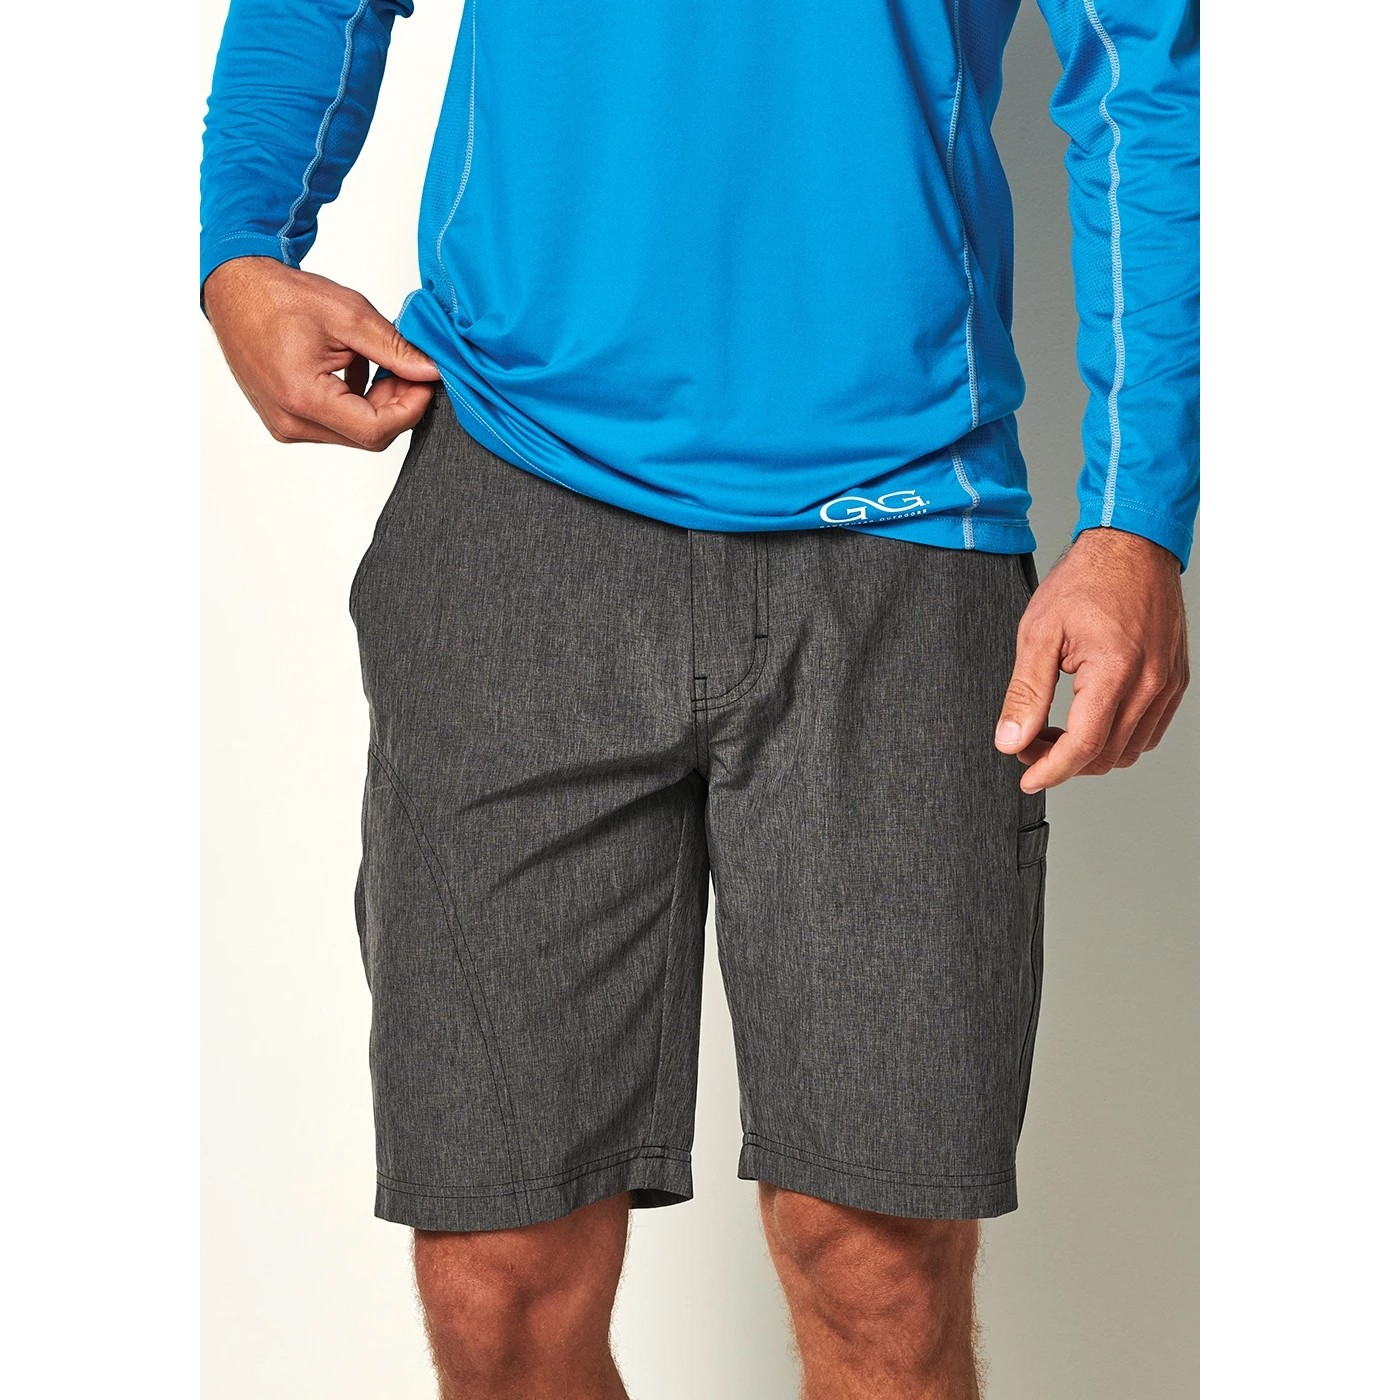 GameGuard Men's Graphite Shorts